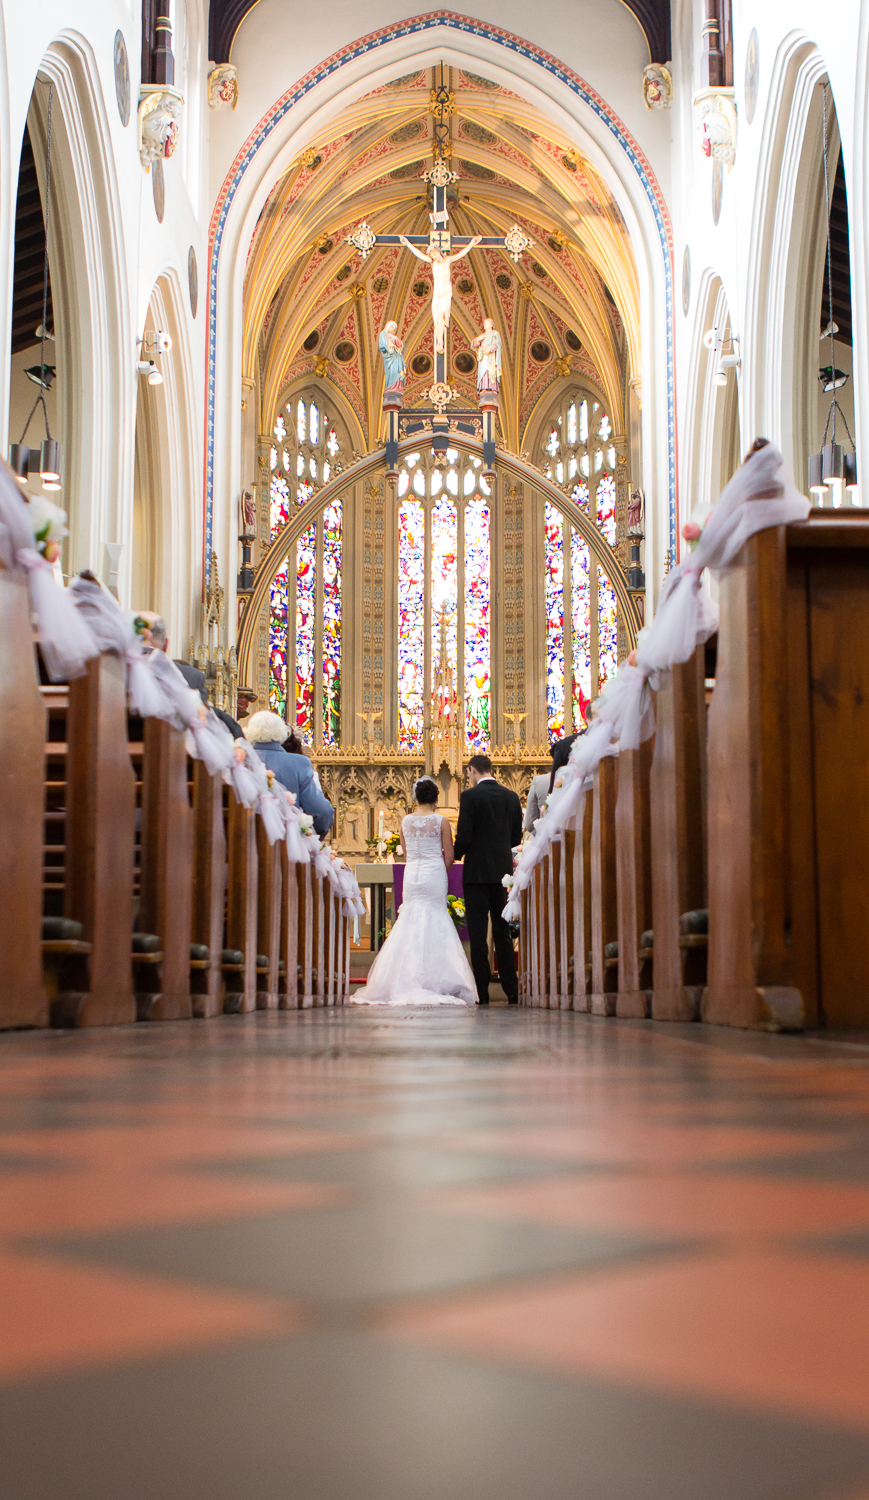 A portrait image of a bride and groom getting married in St Mary's Catholic Church in Derby